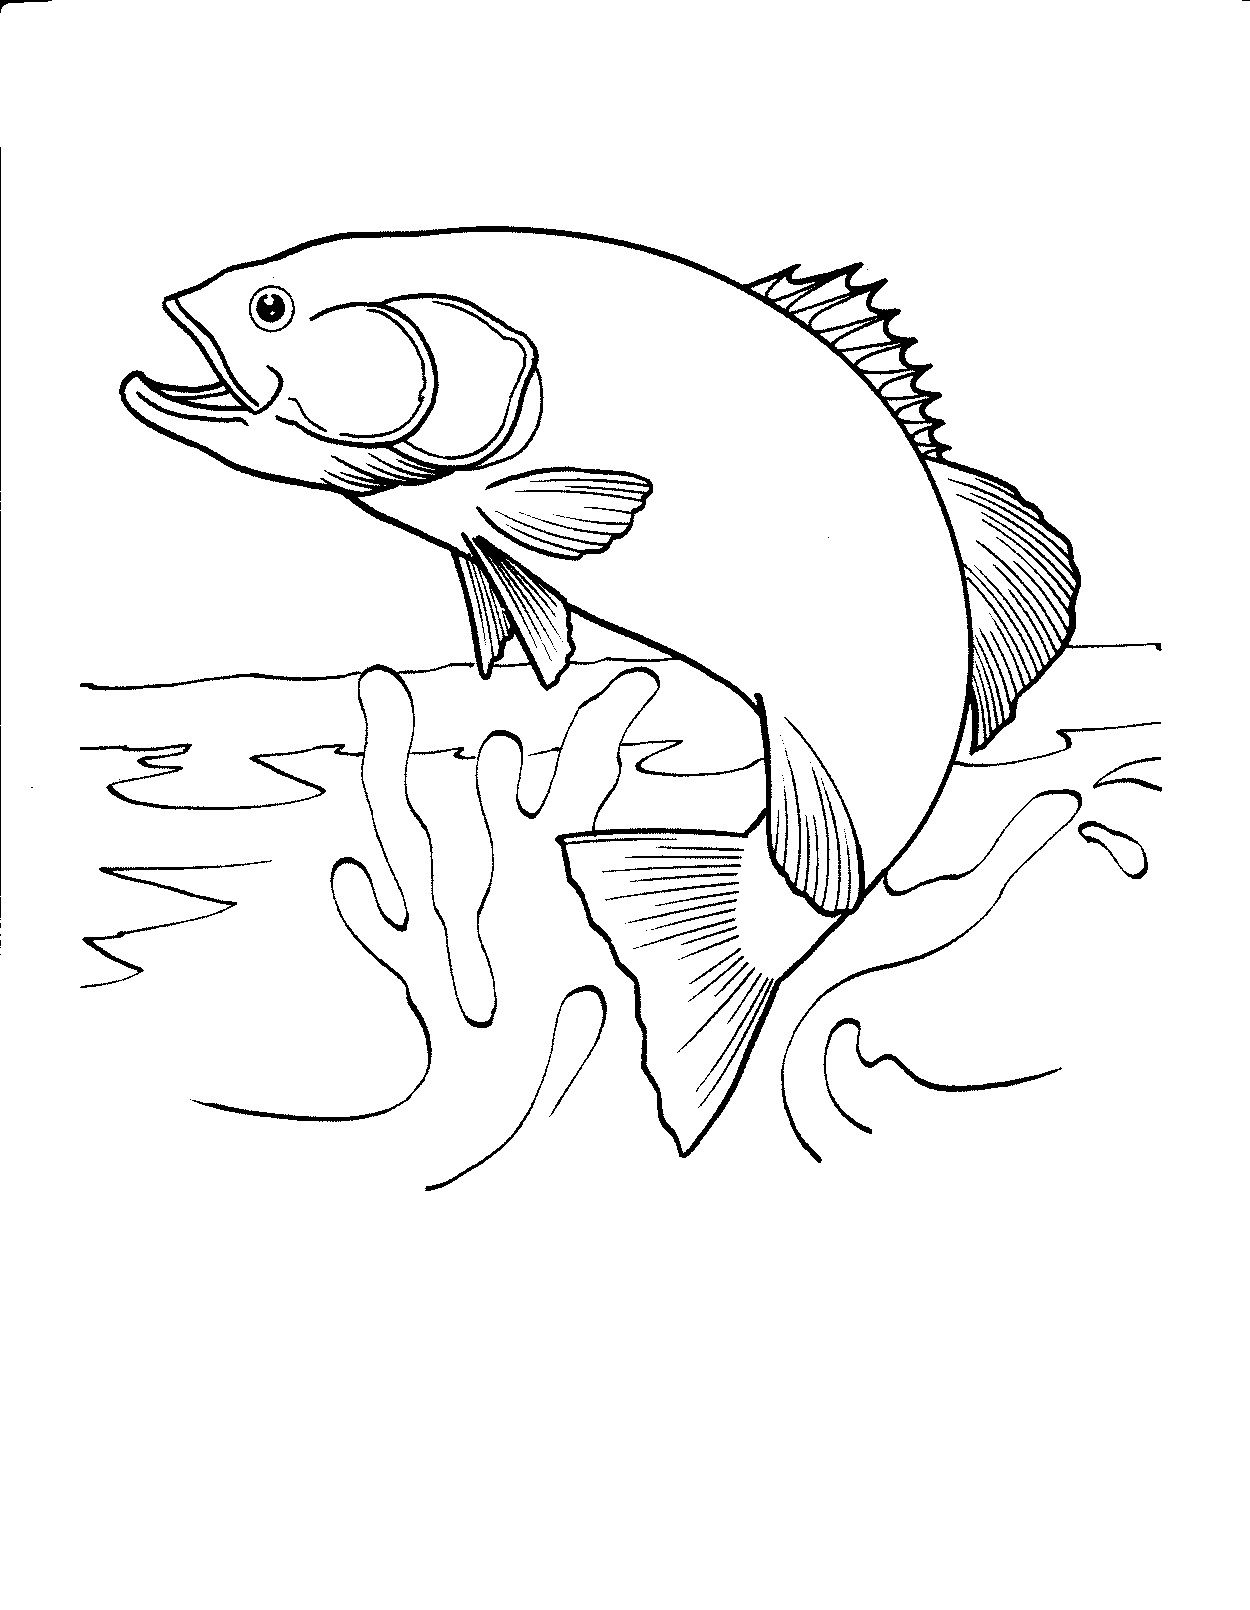 Free Printable Fish Coloring Pages For Kids   Honey Look   Fish - Free Printable Fish Coloring Pages